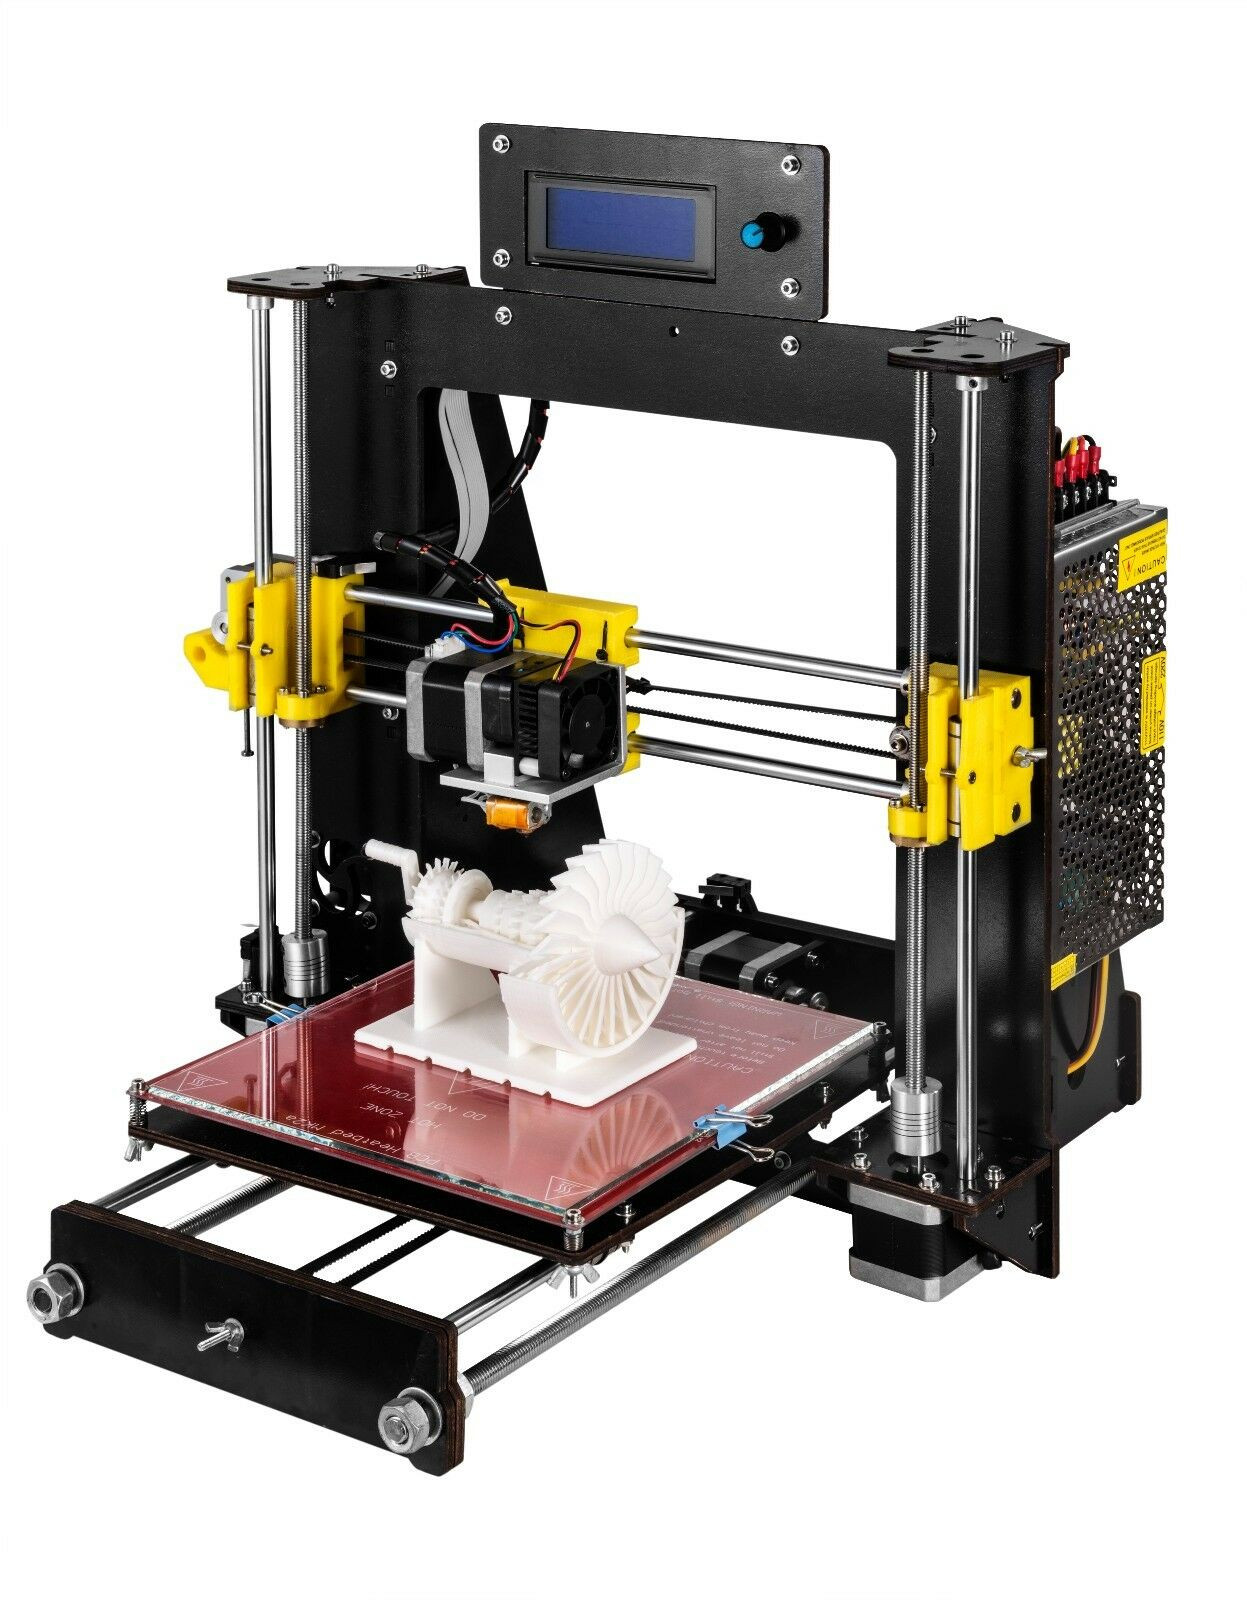 Best ideas about DIY 3D Printer . Save or Pin 2016 Upgraded Full Quality High Precision RepRap Prusa i3 Now.